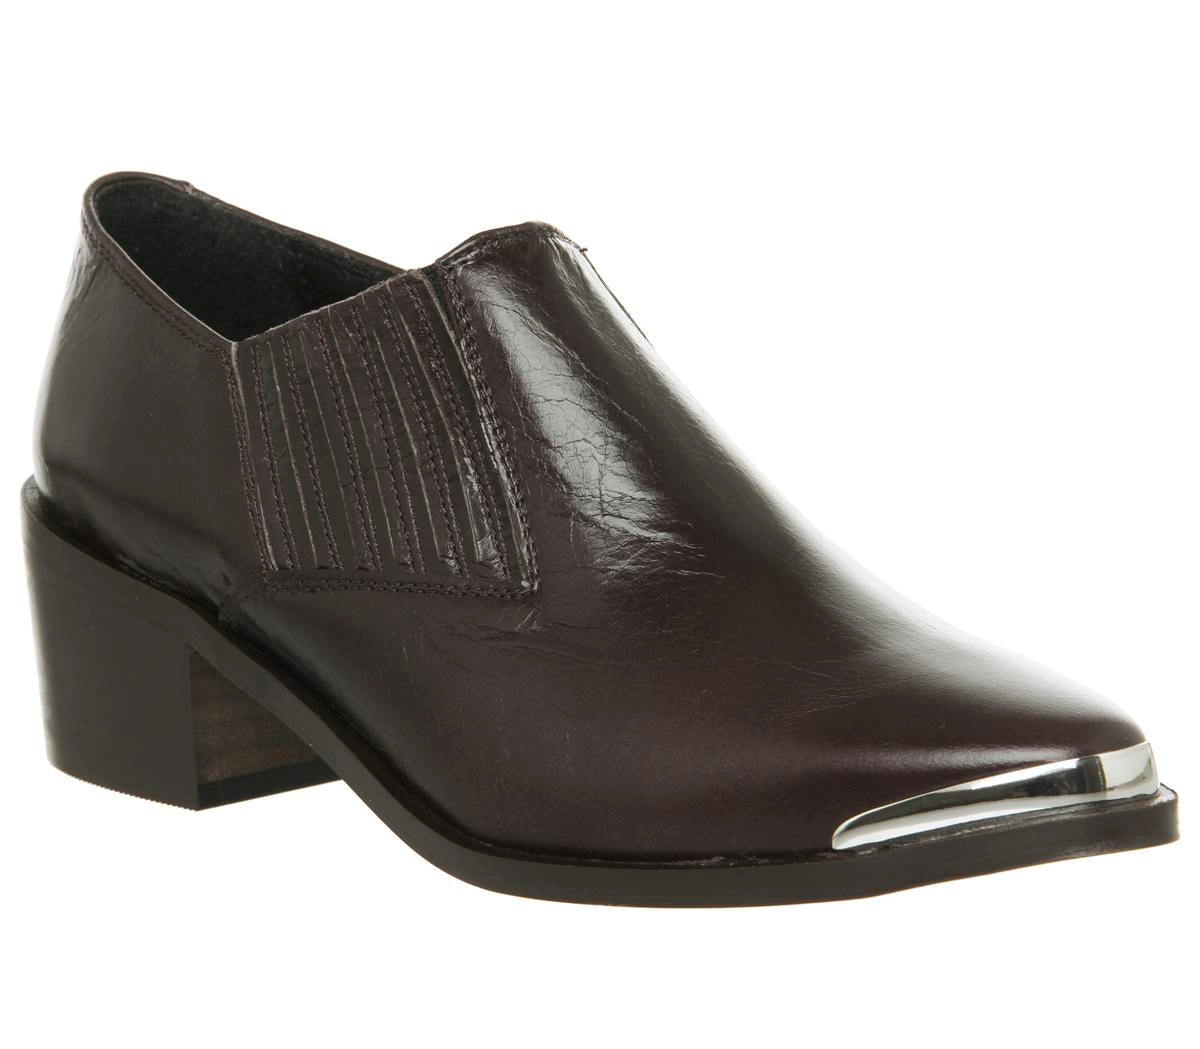 Womens Office Molloy Western Shoeboot Dark Choc Leather